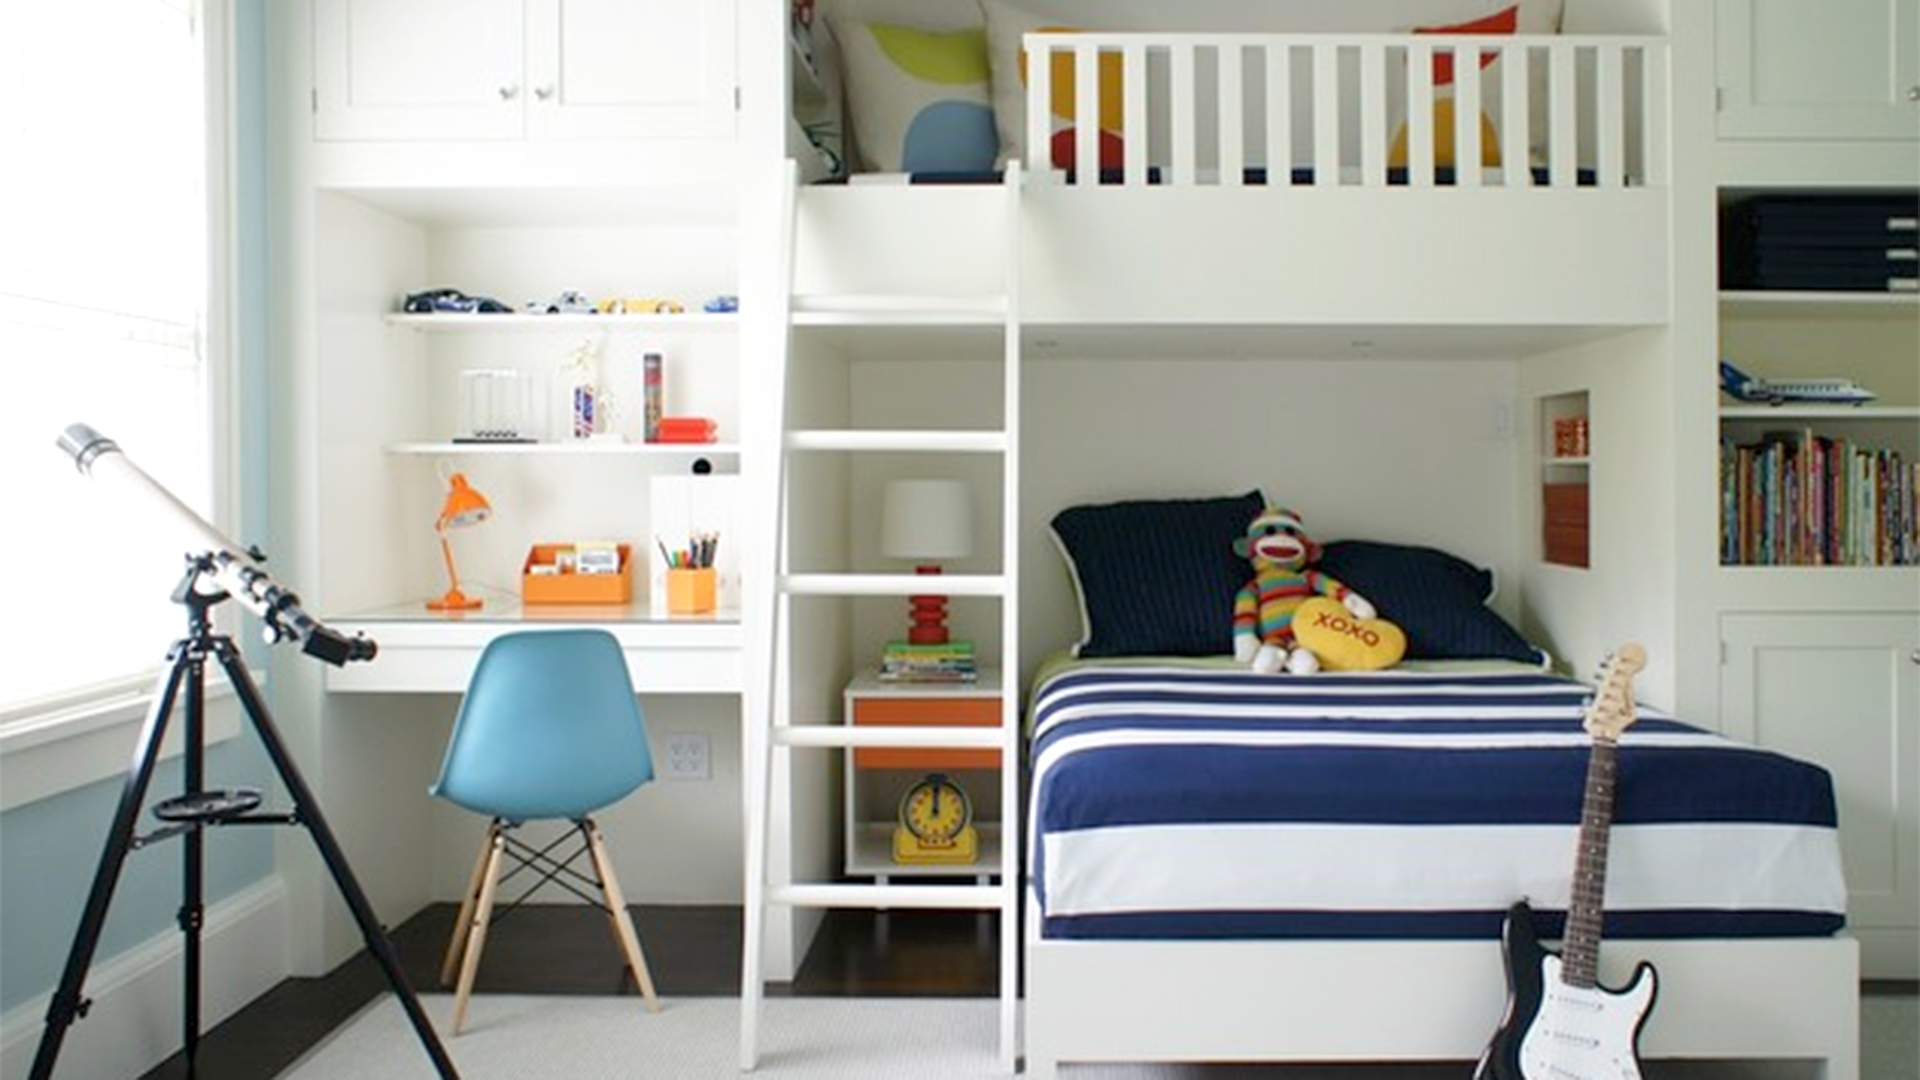 Girls Bedroom Ideas For Every Child: 6 Creative Built-in Ideas For Kids' Rooms